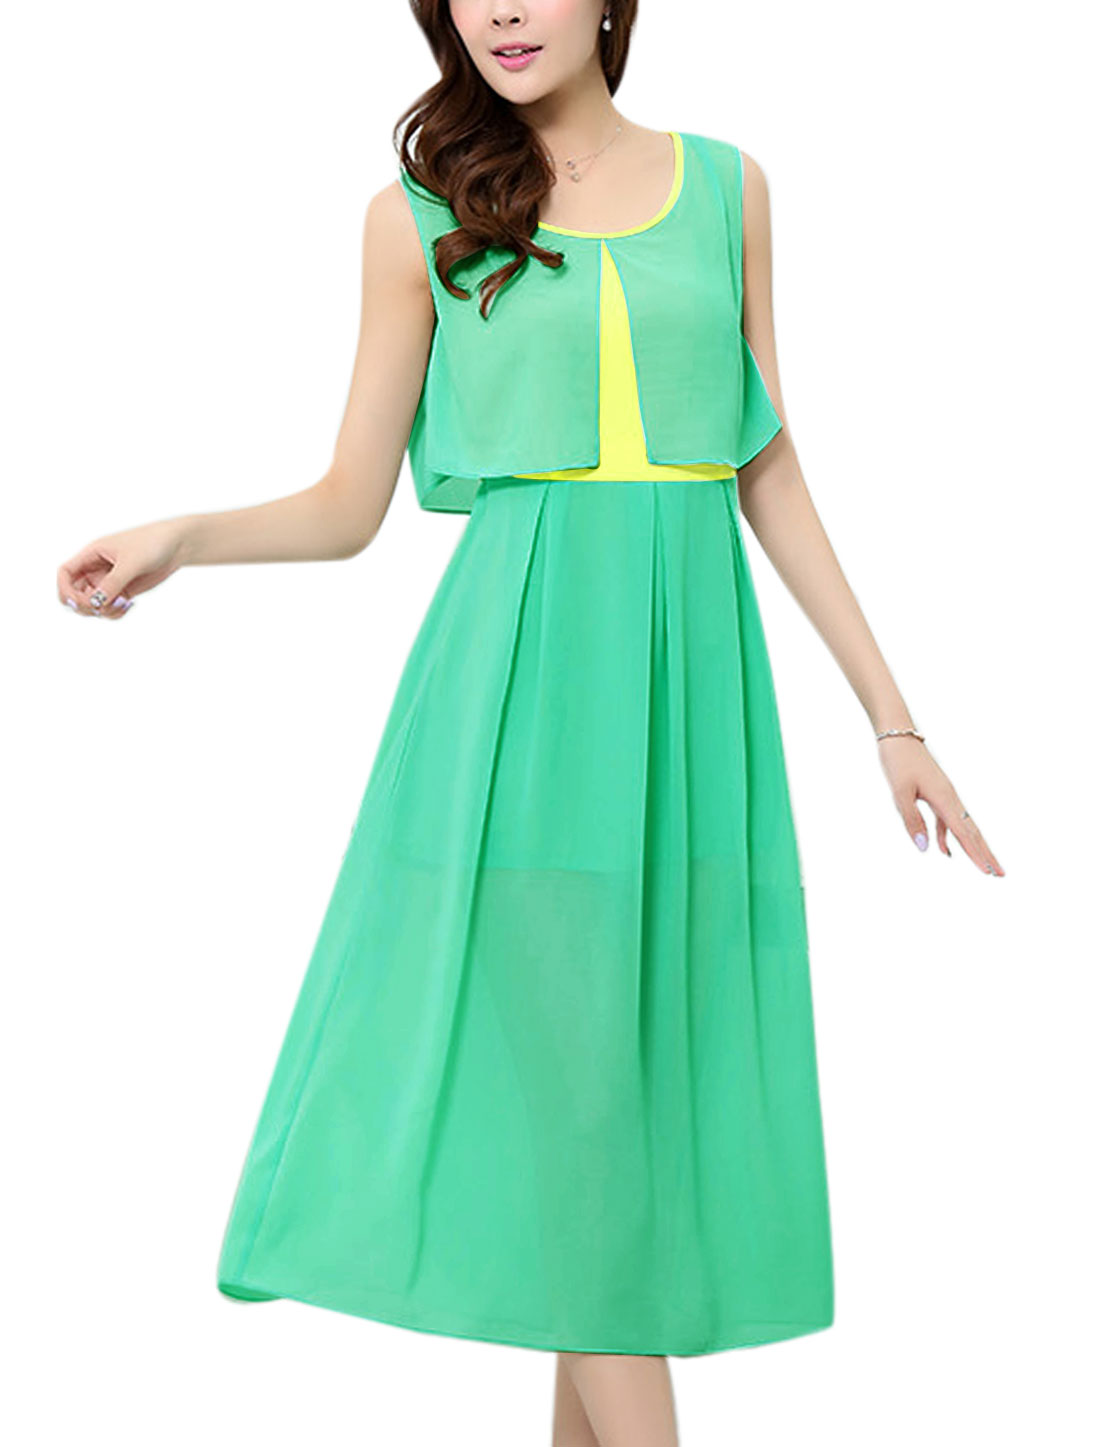 Lady Layered Design Design Lining Mid-Calf A-Line Dress Light Green M